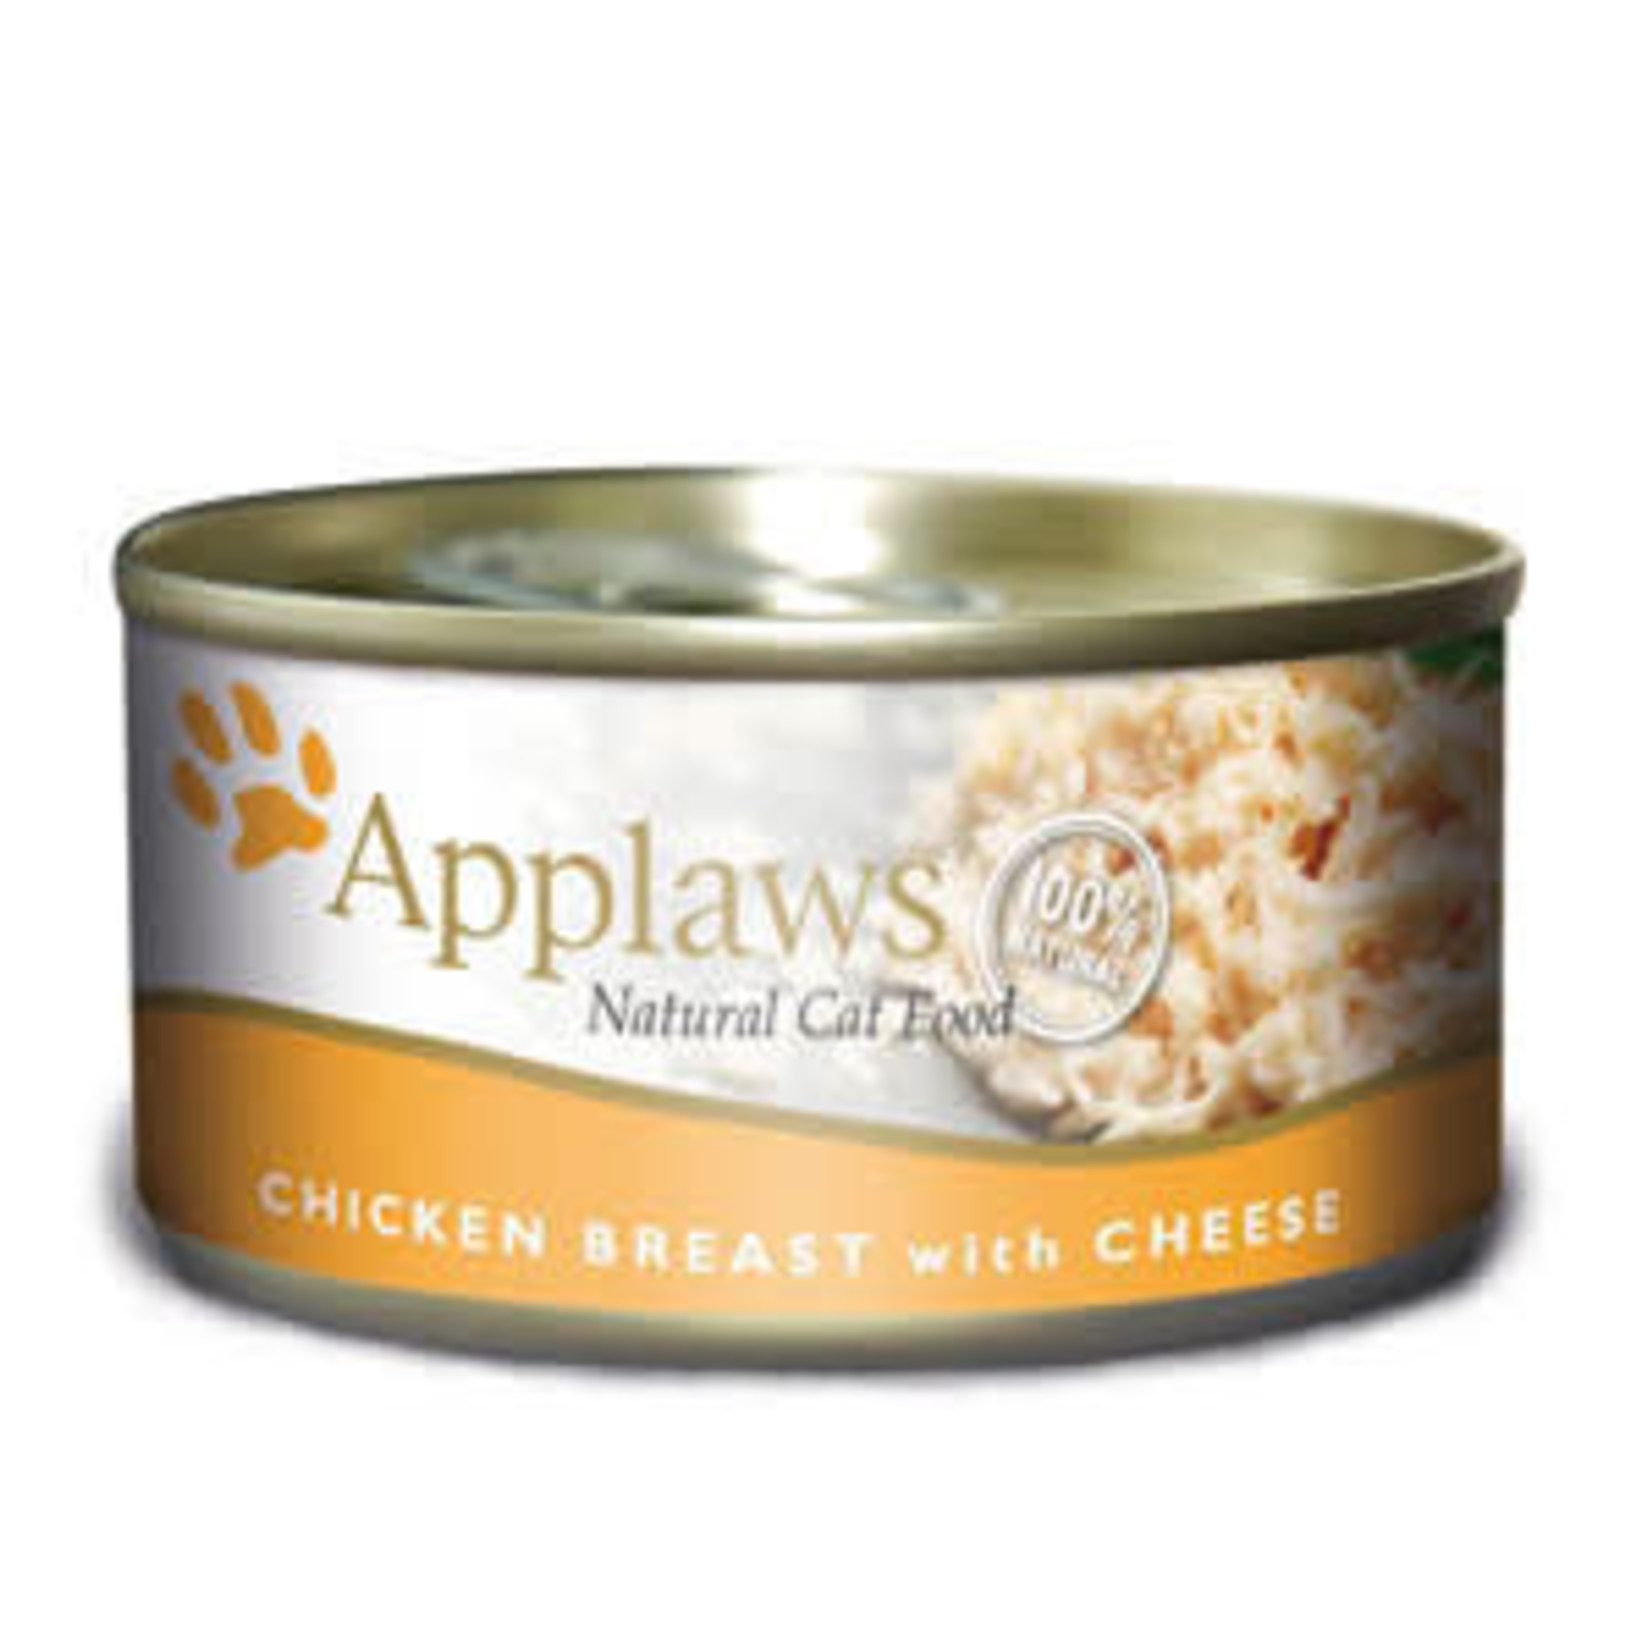 Applaws Cat Wet Food Chicken Breast & Cheese, 156g